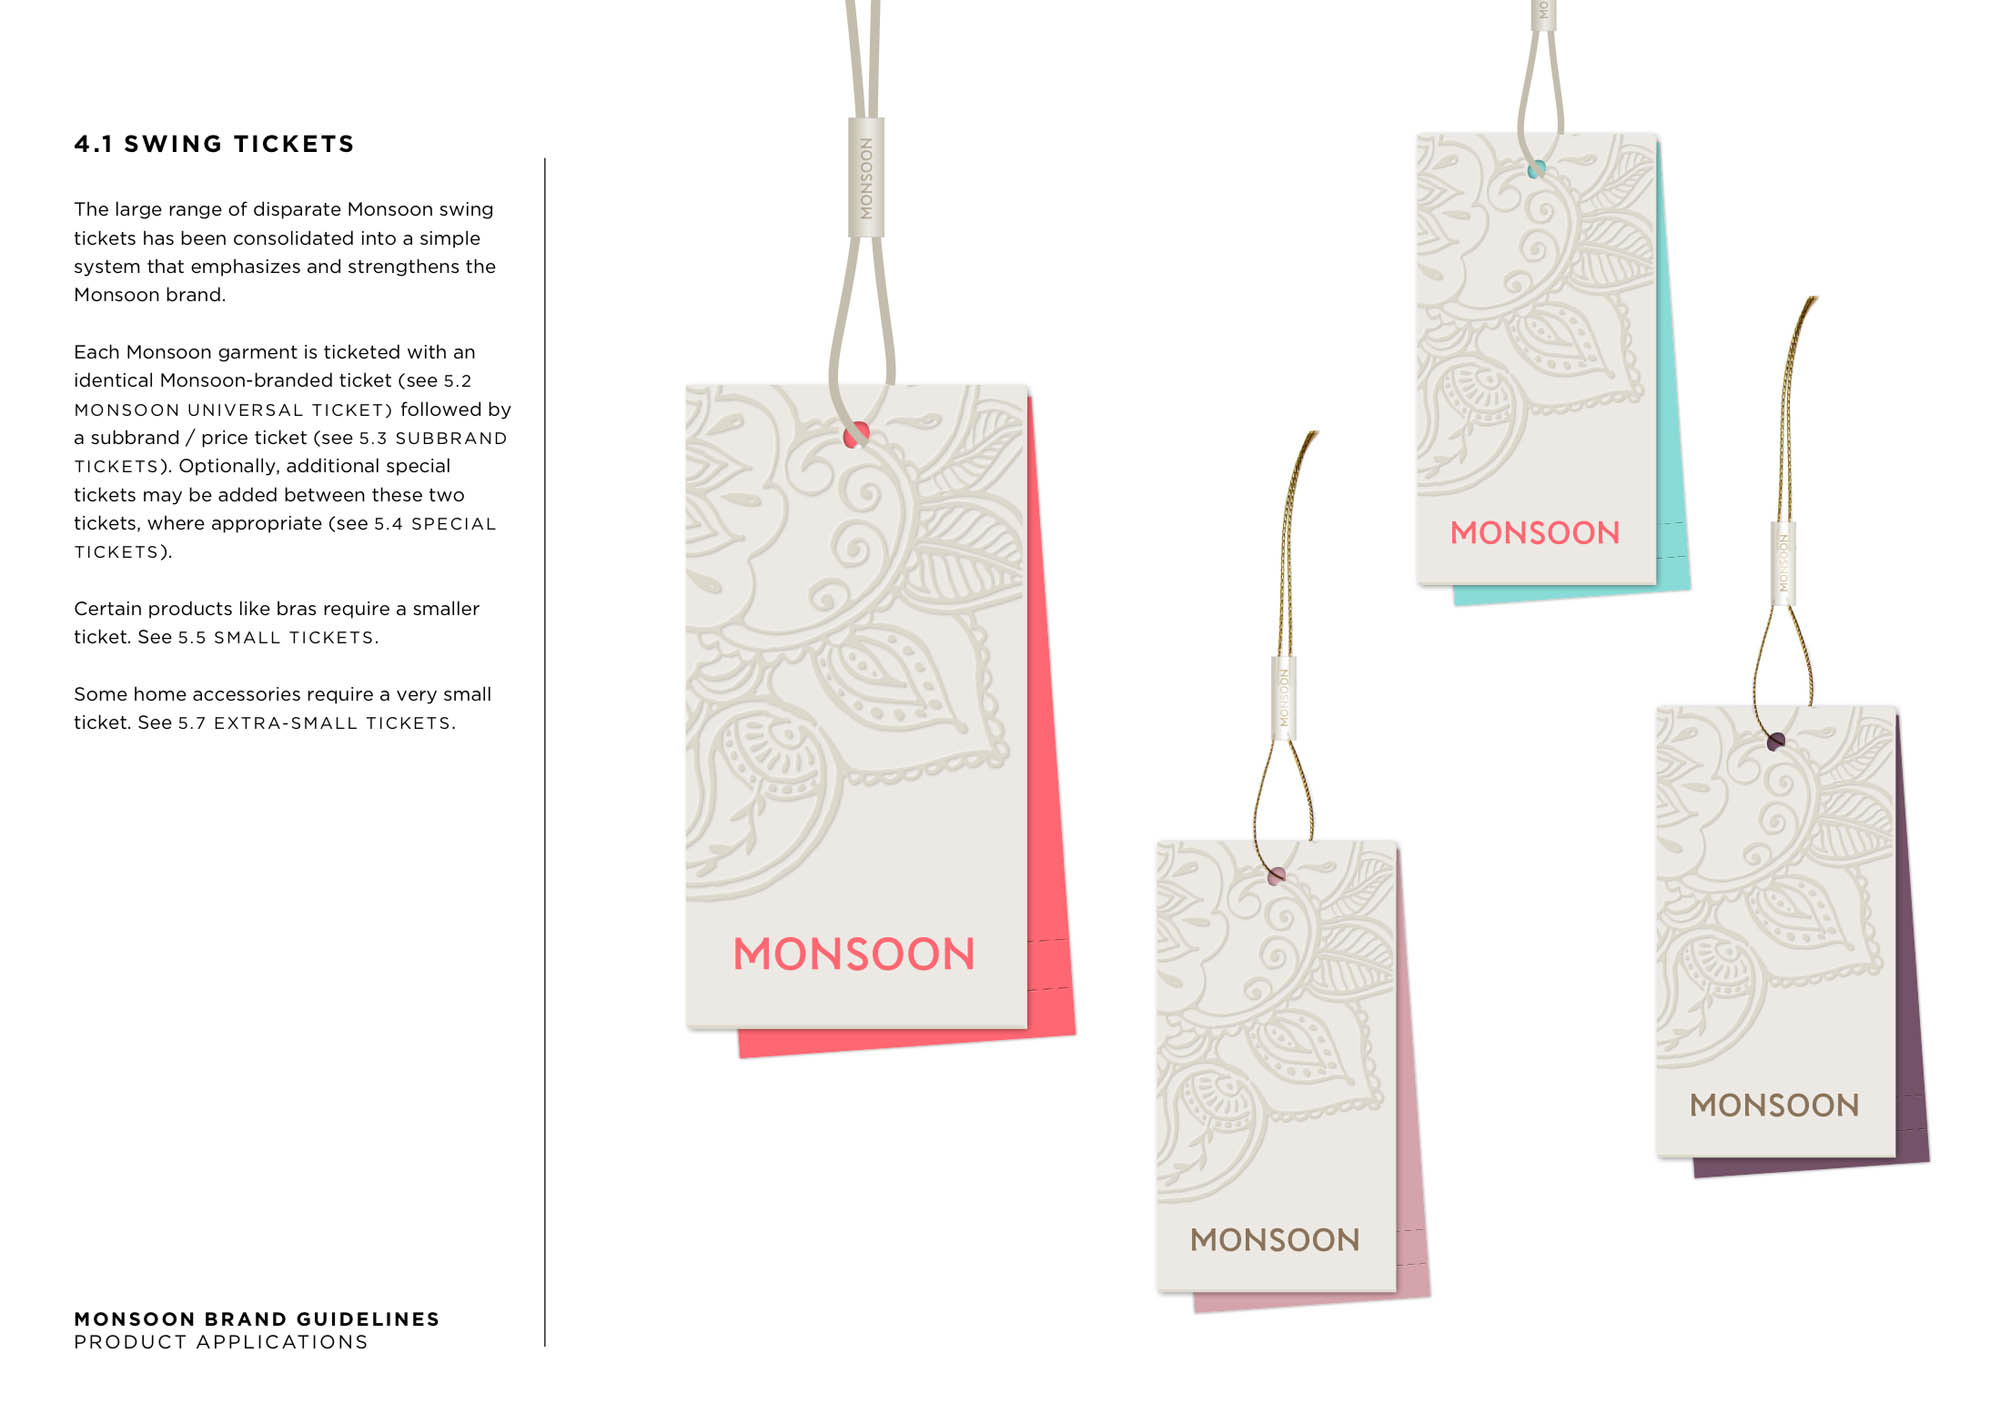 monsoonguidelines_061